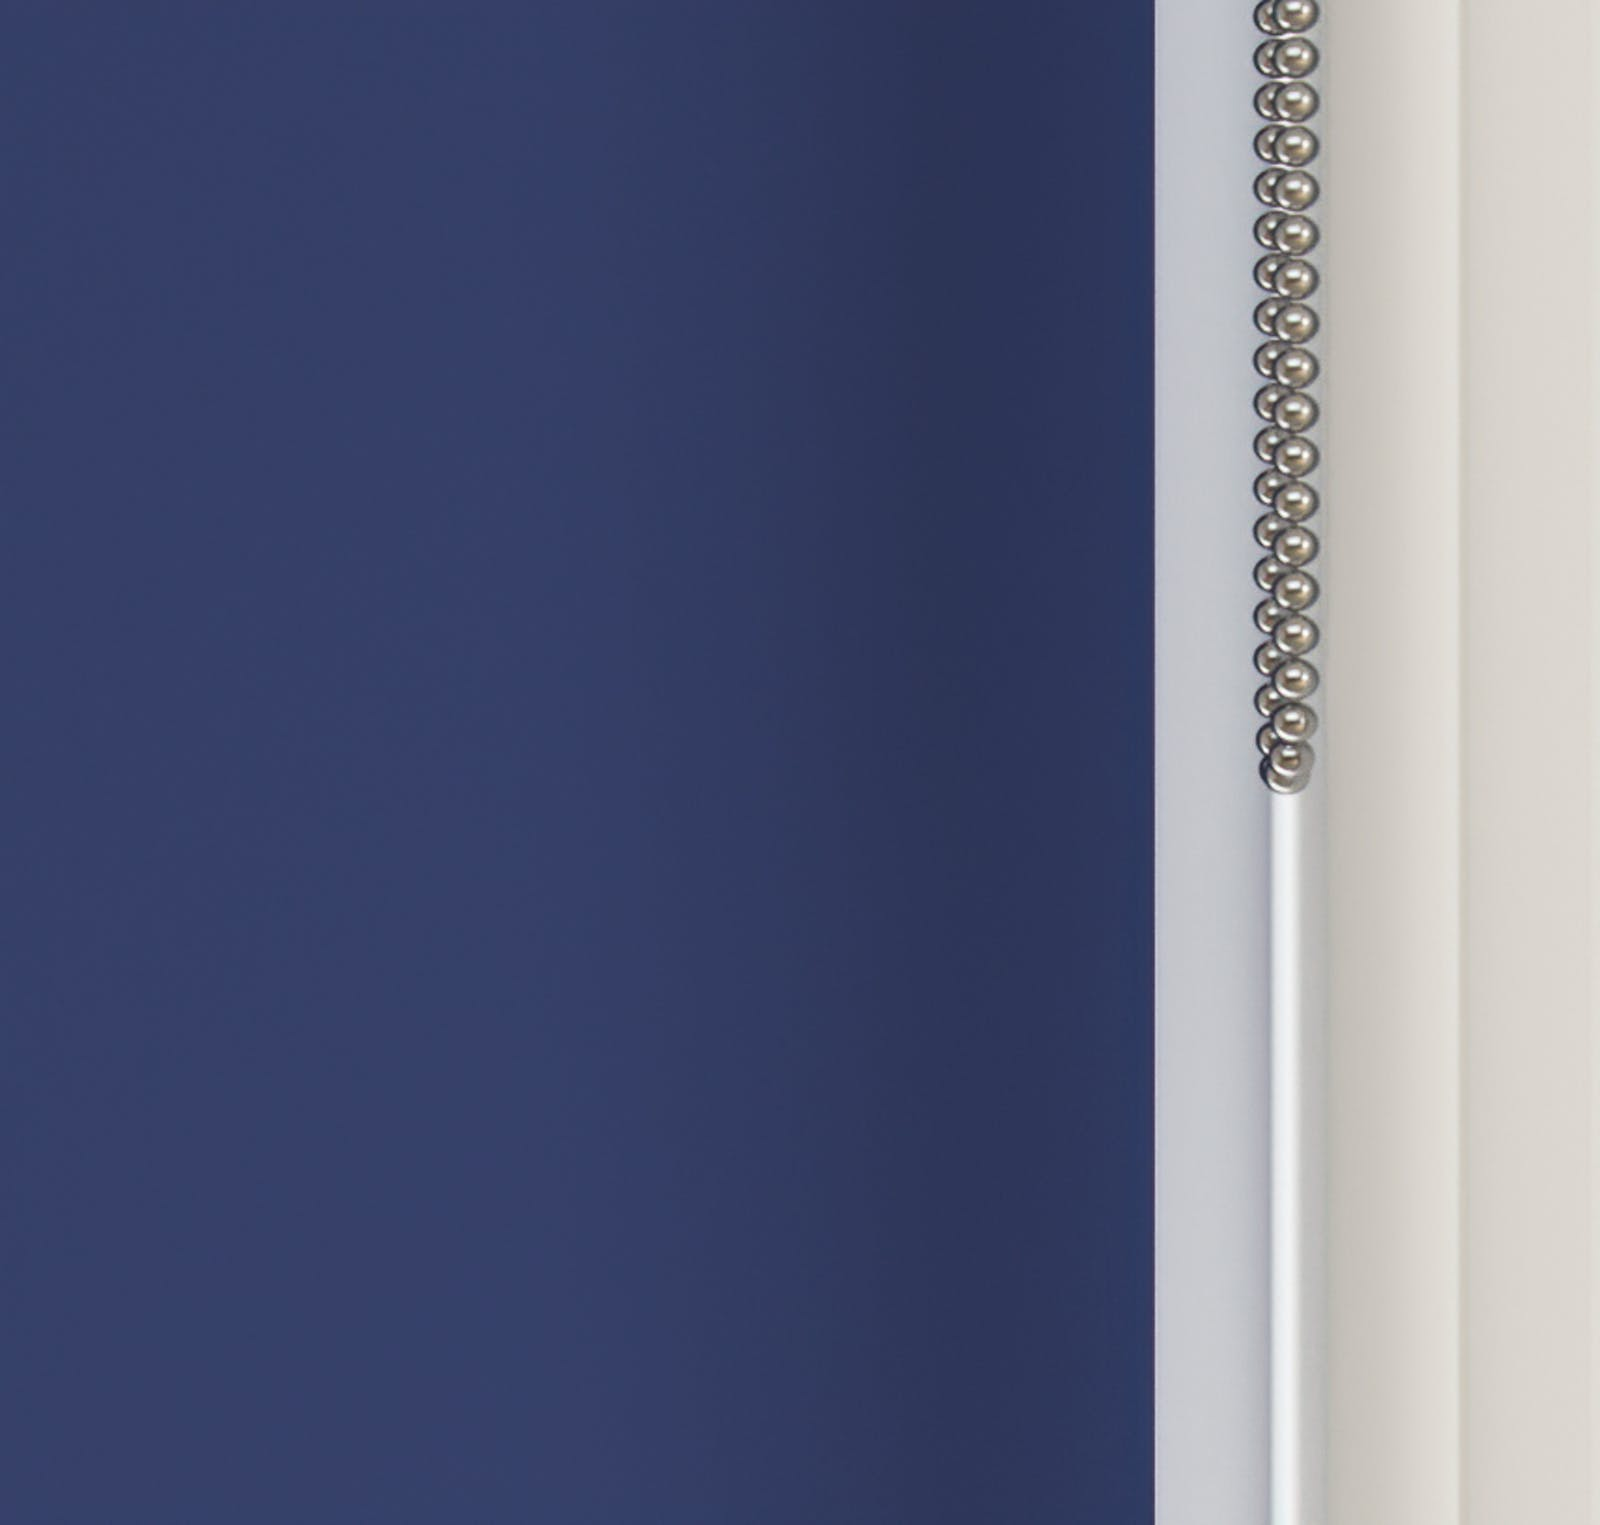 Close up view of Lick Blue 08 roller blinds